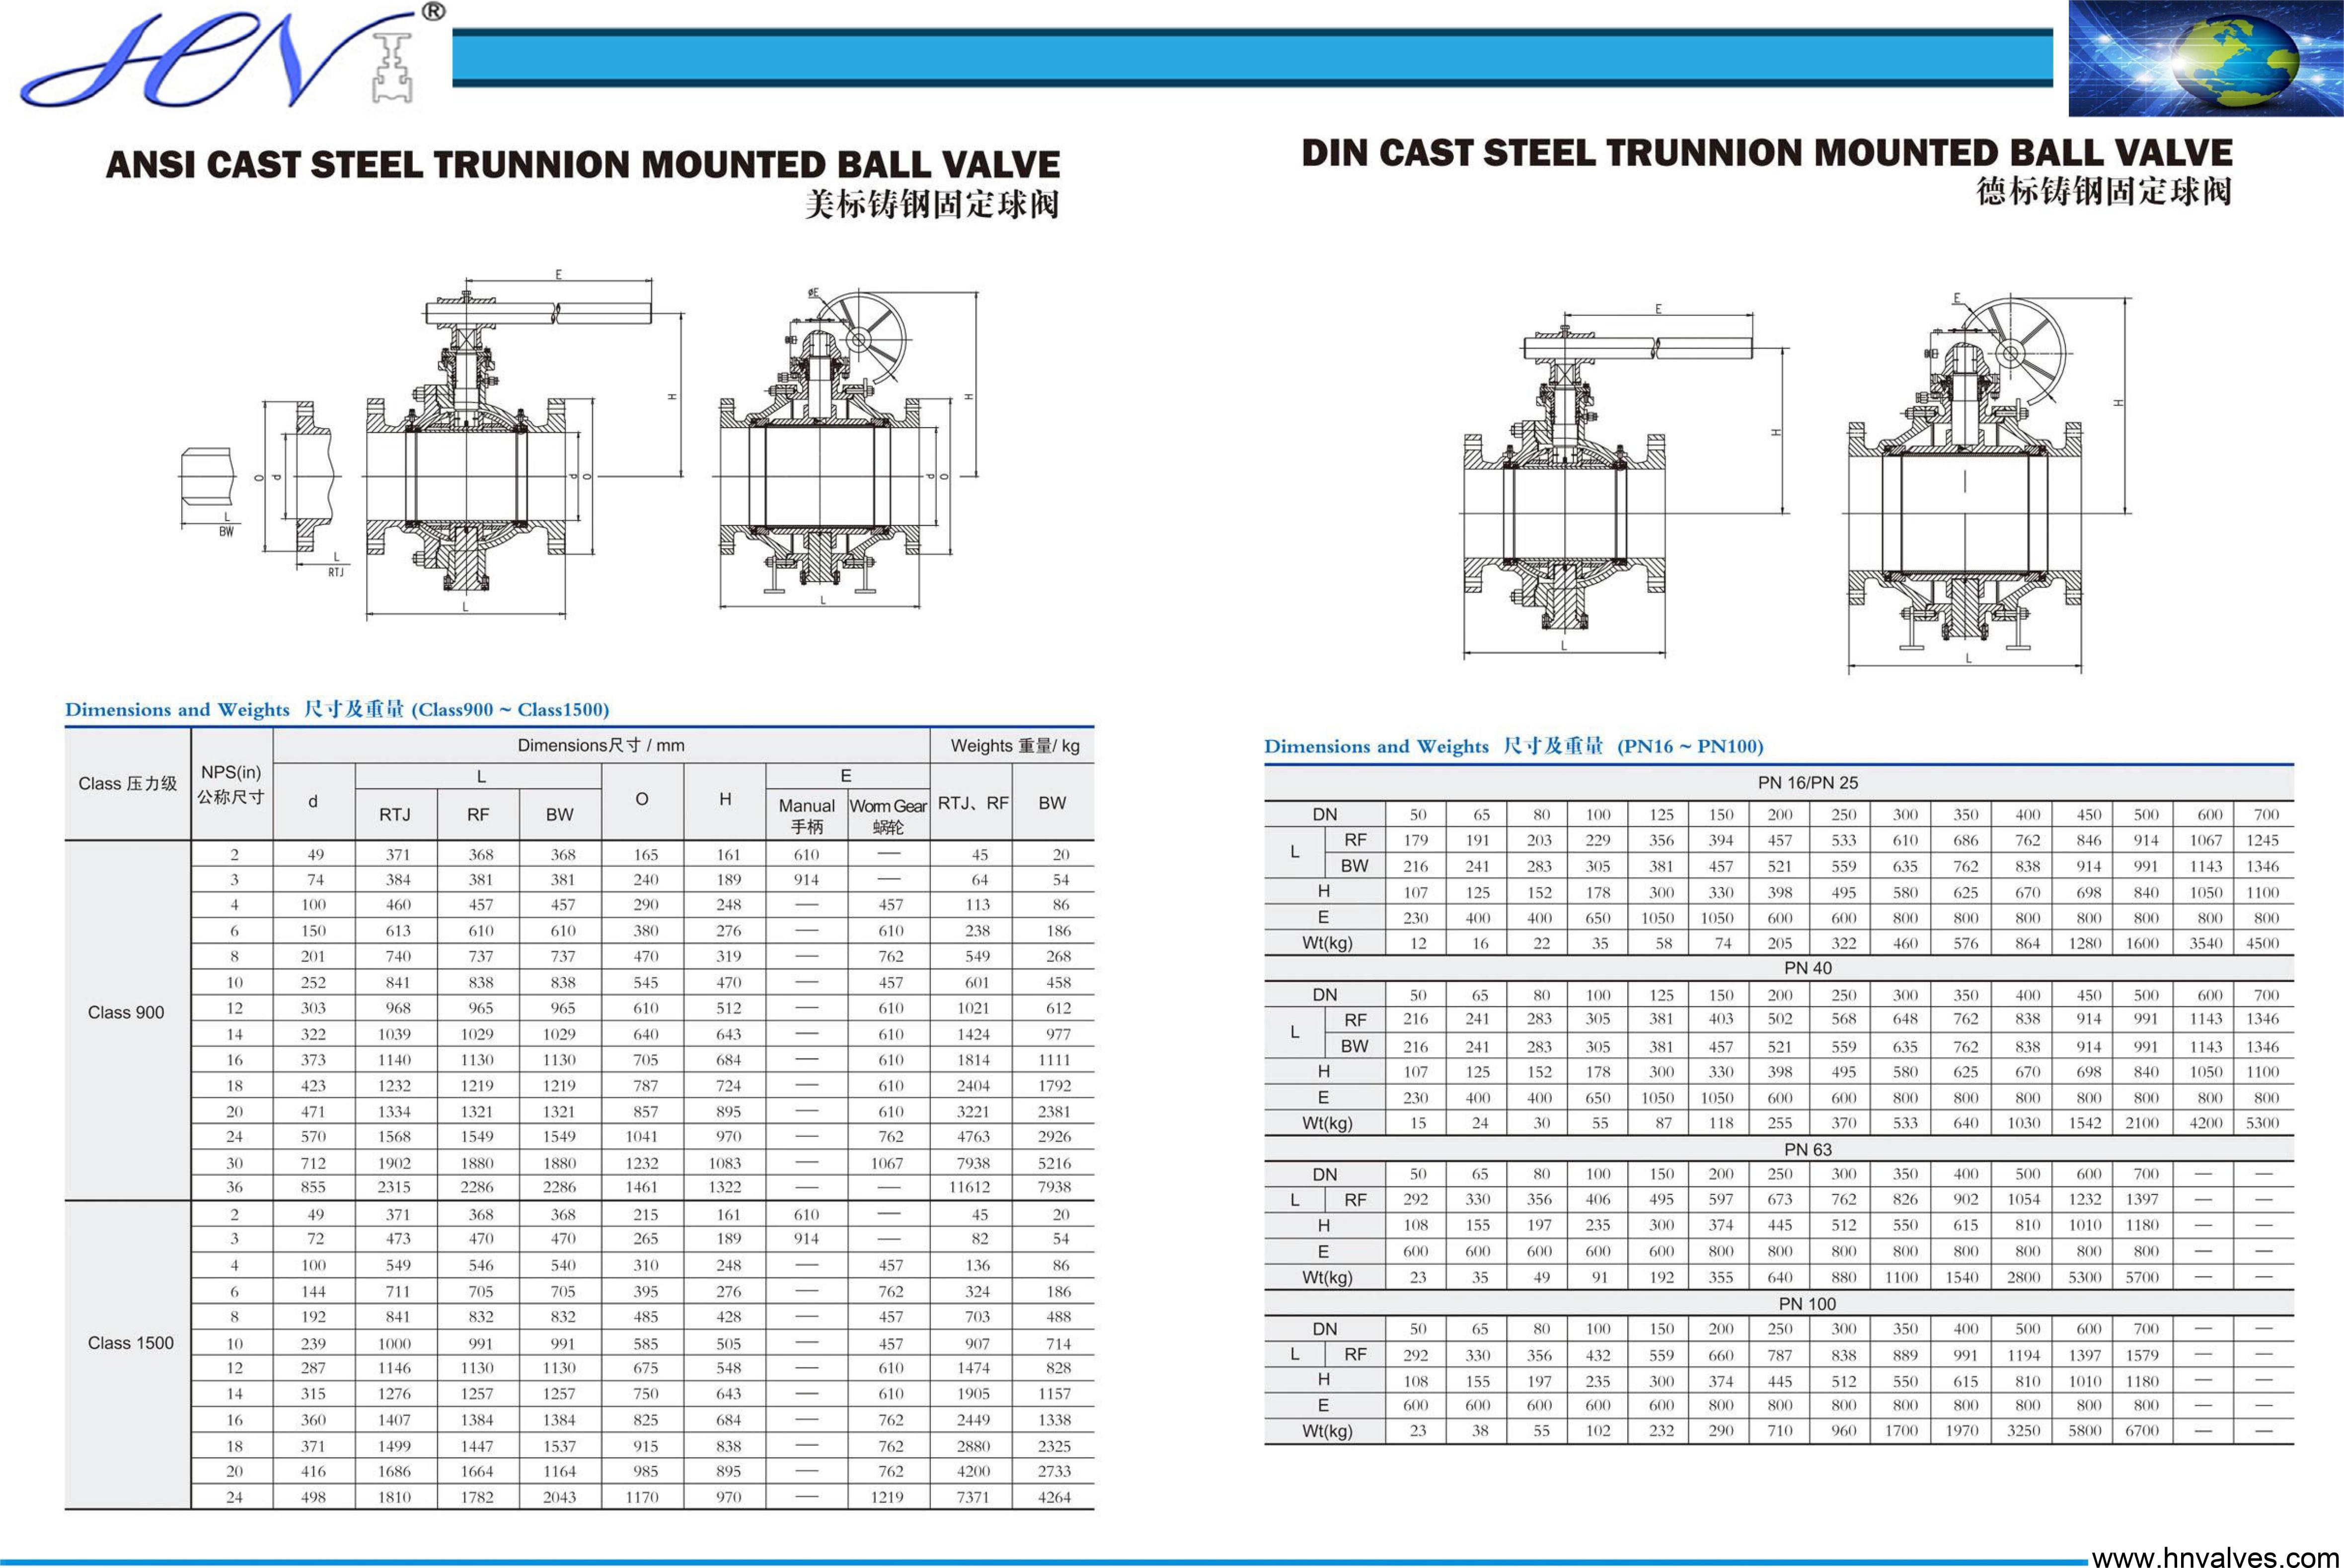 DIN cast steel trunnion mounted ball valve